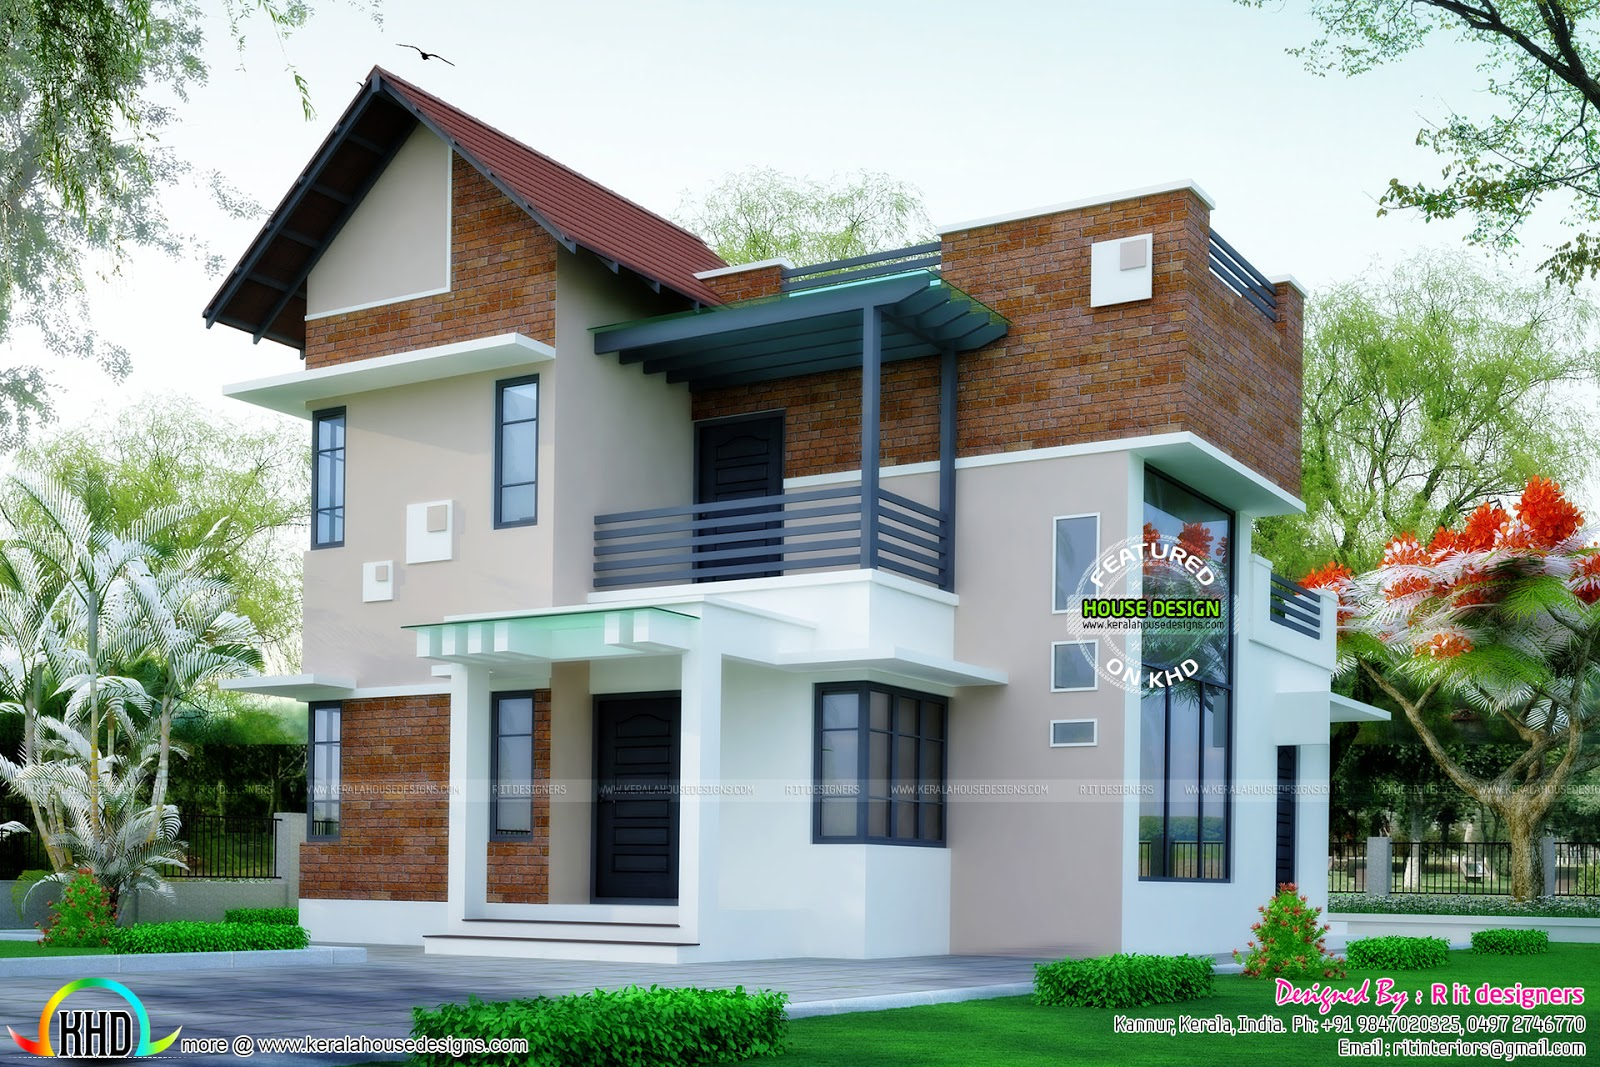 Brick wall mix modern house plan kerala home design and for House designers